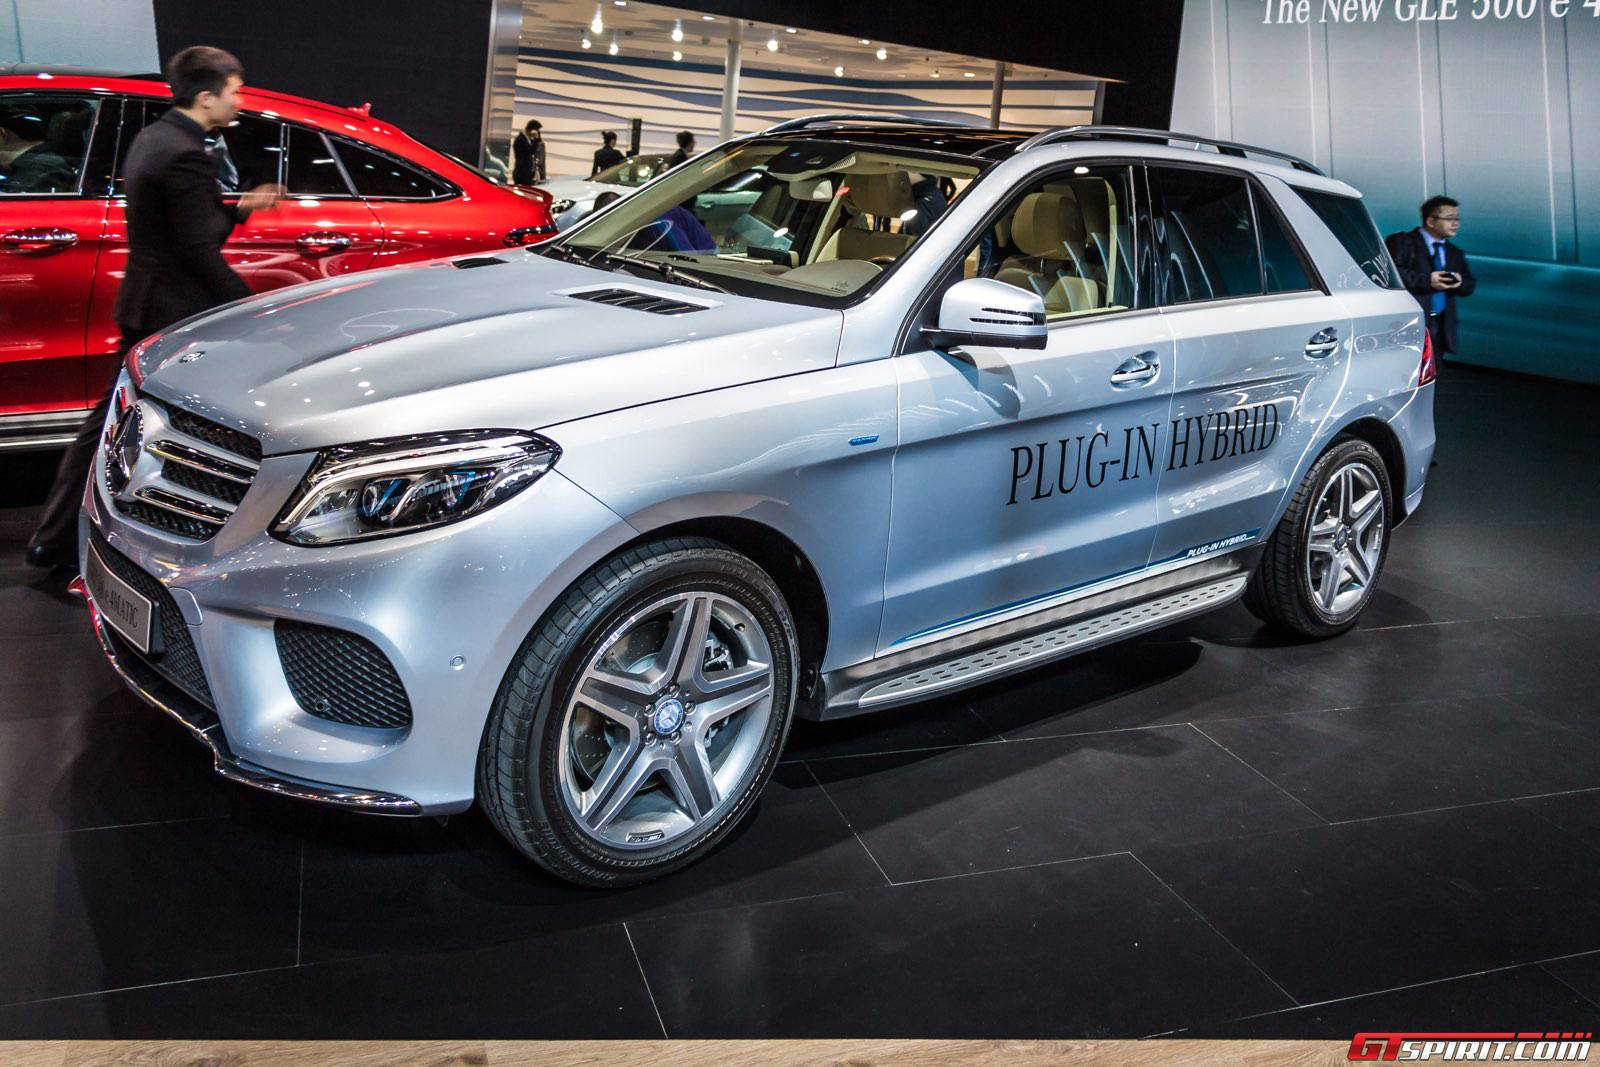 shanghai 2015 mercedes benz gle500e plug in hybrid gtspirit. Black Bedroom Furniture Sets. Home Design Ideas